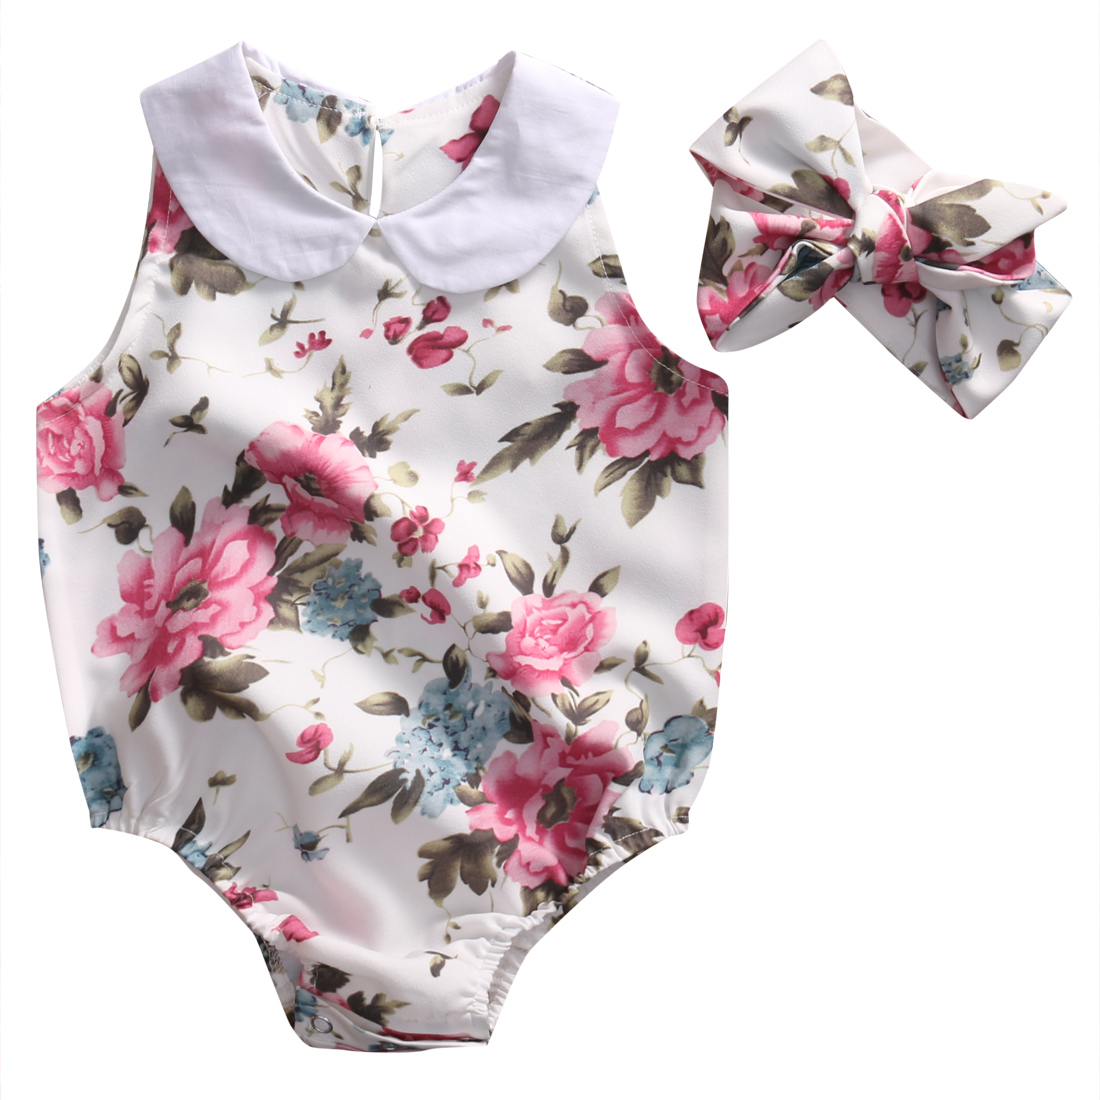 Newborn Infant Baby Girl PeterPan Collar Floral Romper Headband Outfit 2pcs Set Clothes